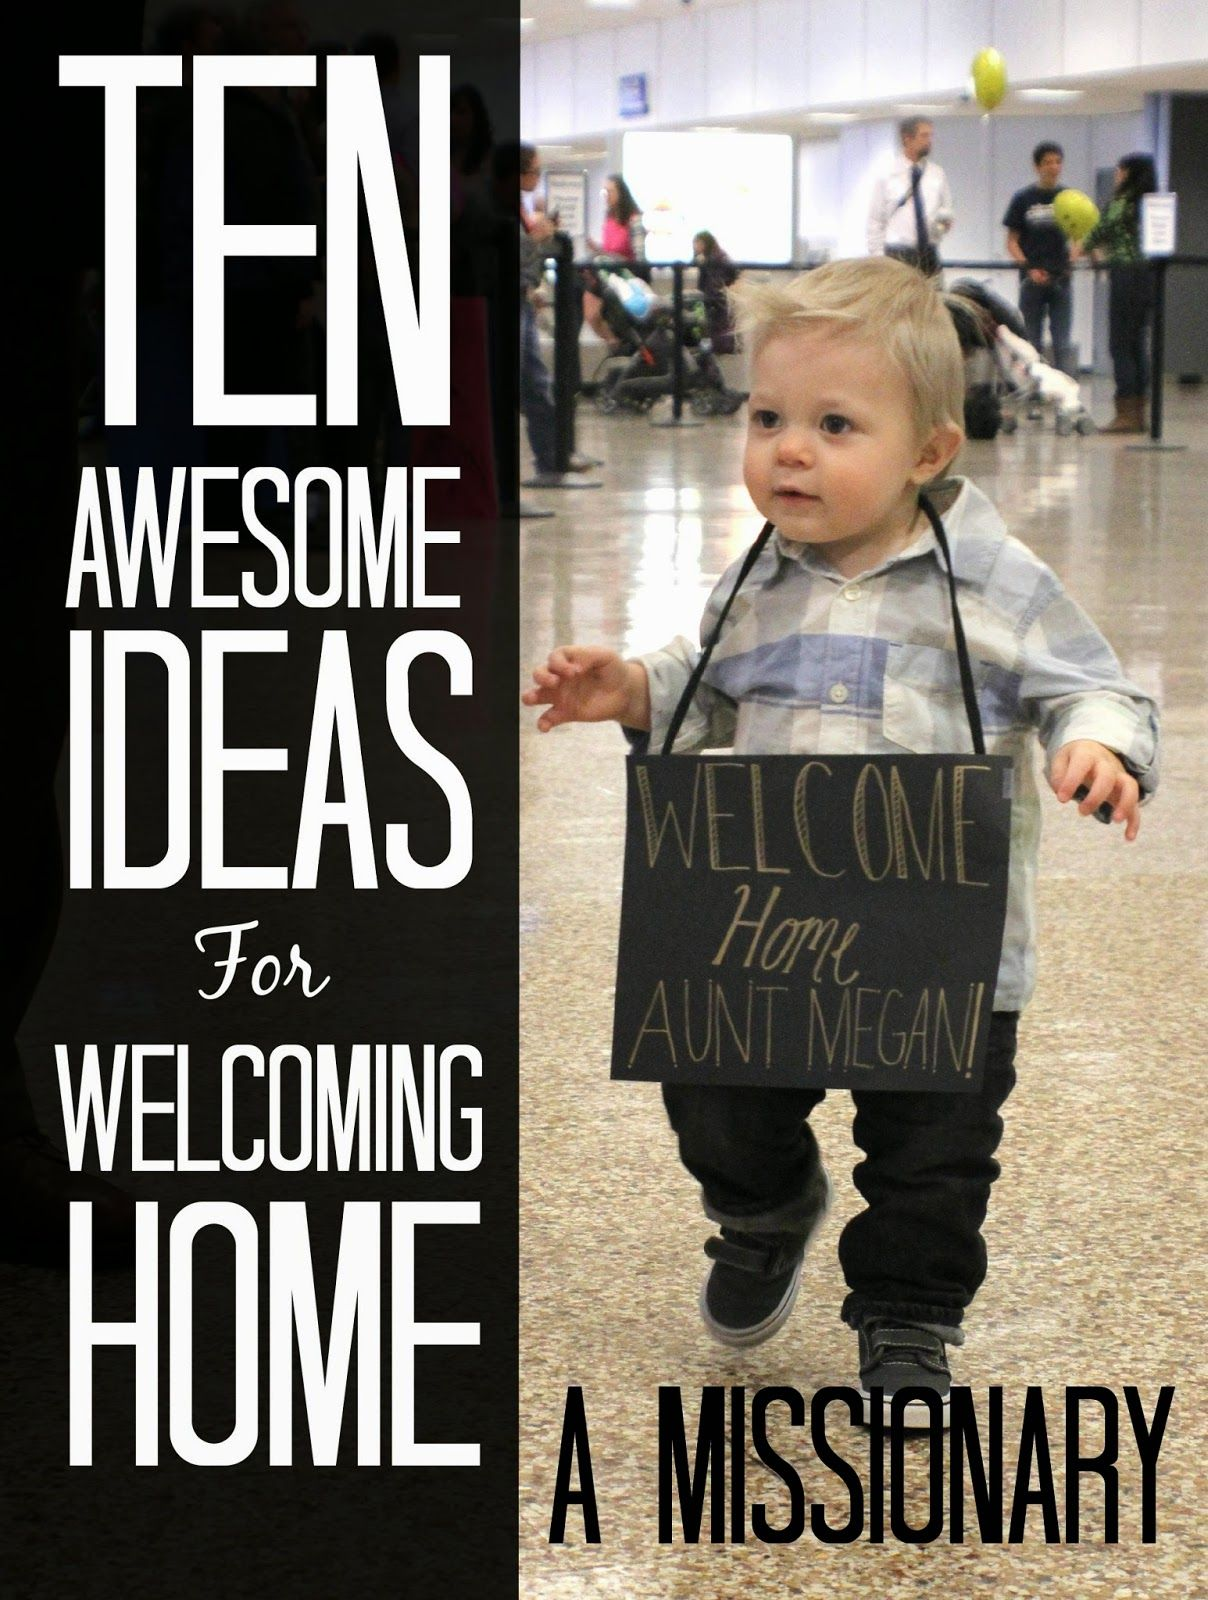 10 Awesome Ideas for Welcoming Home a Missionary is part of Welcome home Missionary - My sister is home!!! It was so fun going to the airport and seeing her come down with the group of missionaries she went out with  I loved seeing all the anxious parents (not to mention my own) with balloons, signs, banners, and flowers  After welcoming home my friends and family members from their two … Continue reading  10 Awesome Ideas for Welcoming Home a Missionary